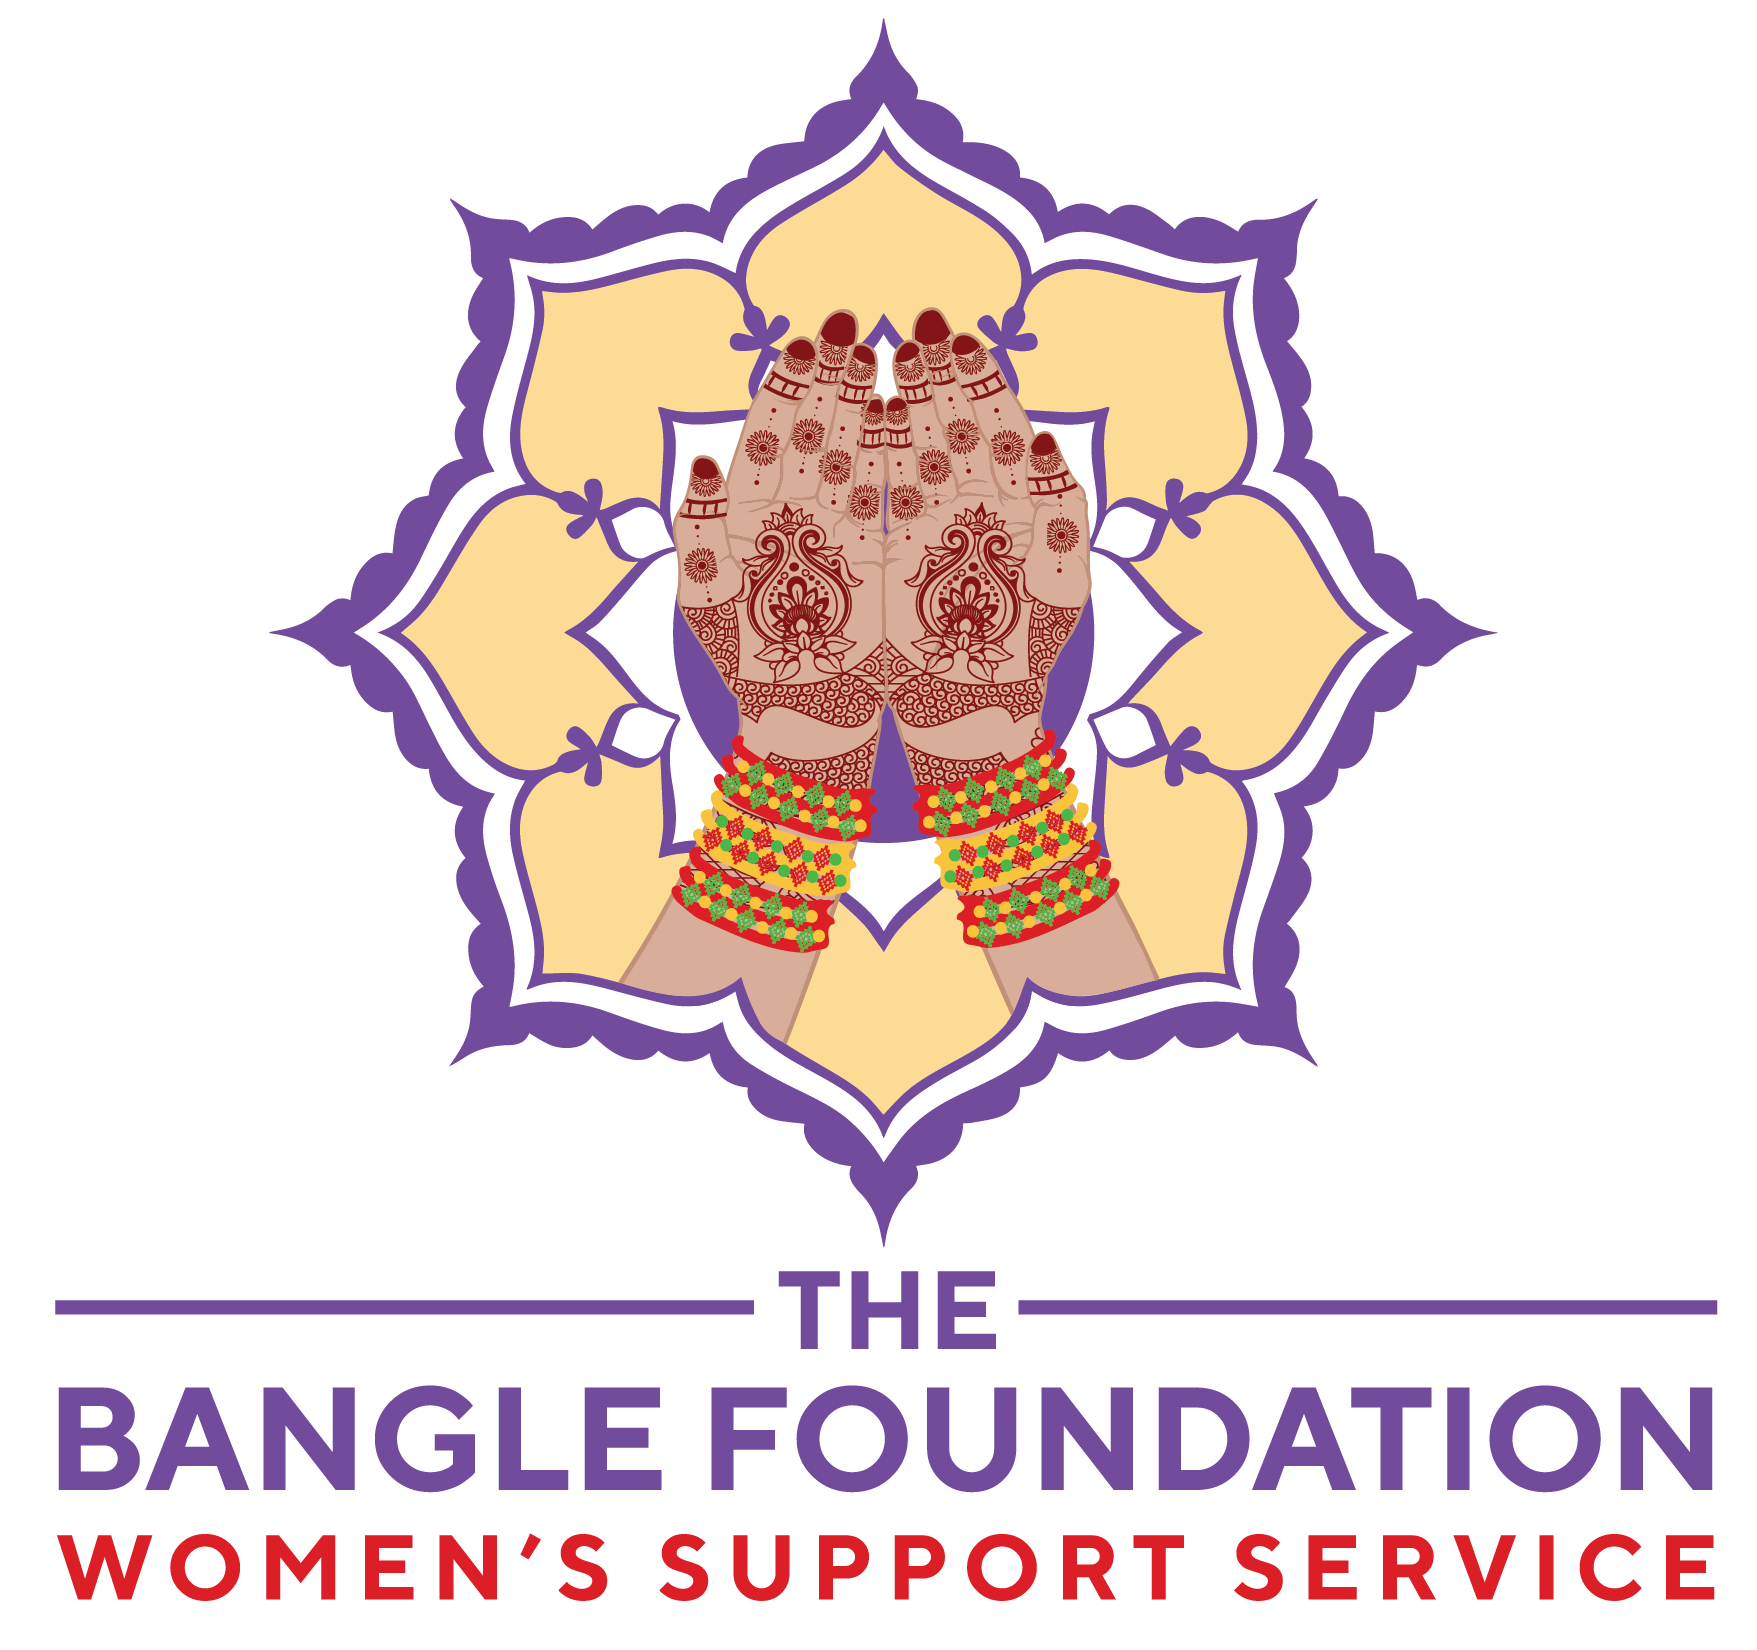 The Bangle Foundation